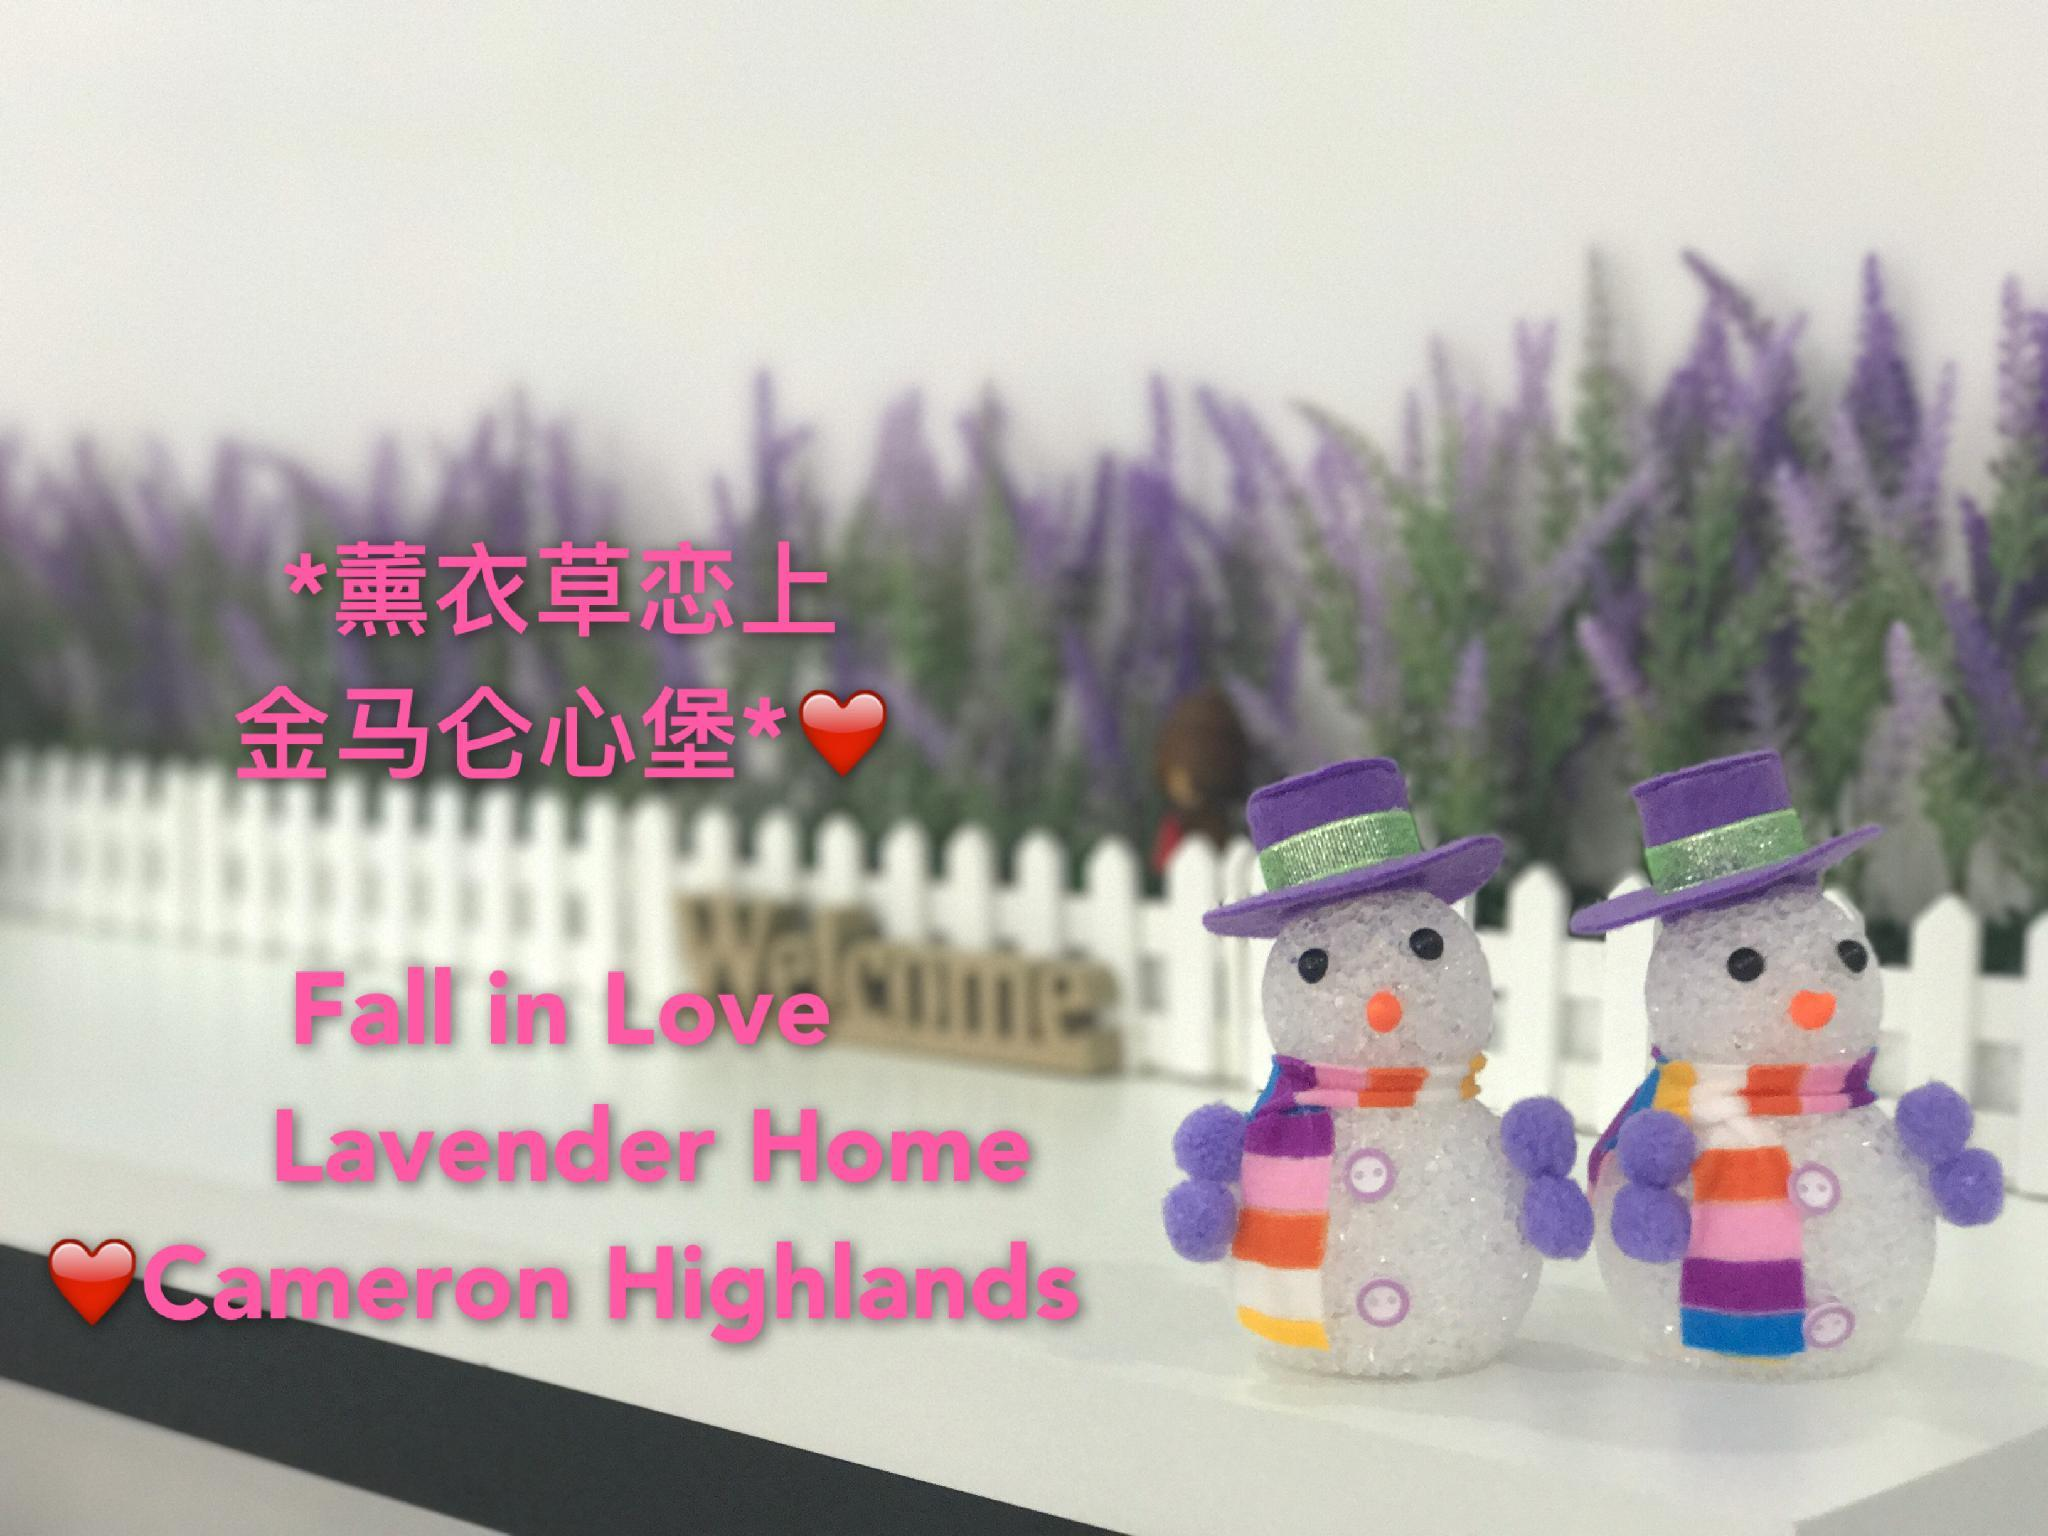 * Fall In Love Lavender Home